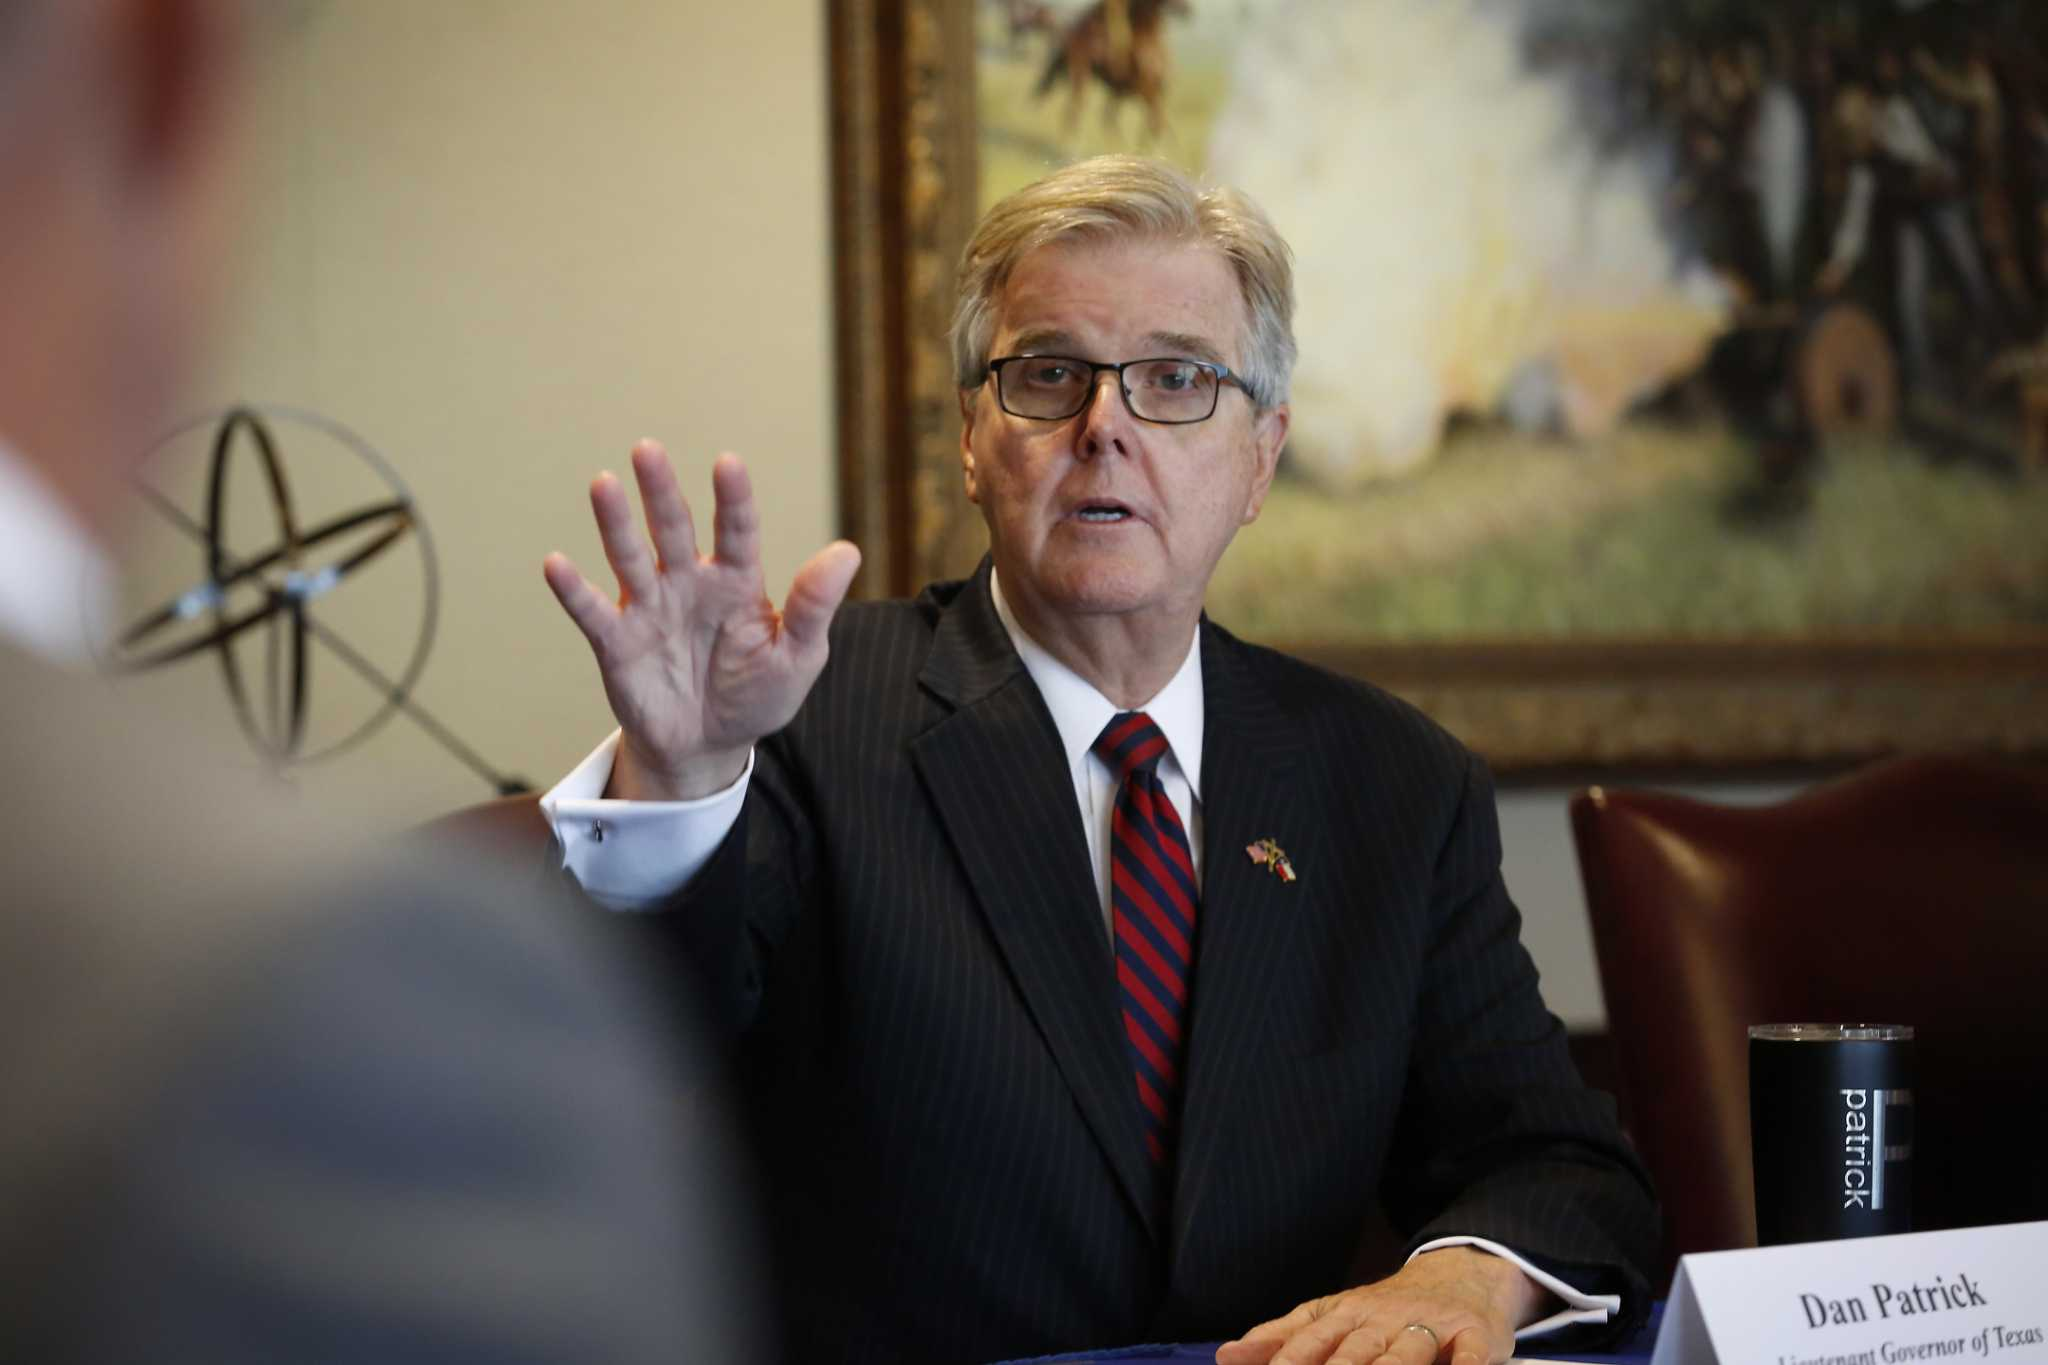 Fact check: Lt. Gov. Dan Patrick claims most people of color don't have a vehicle